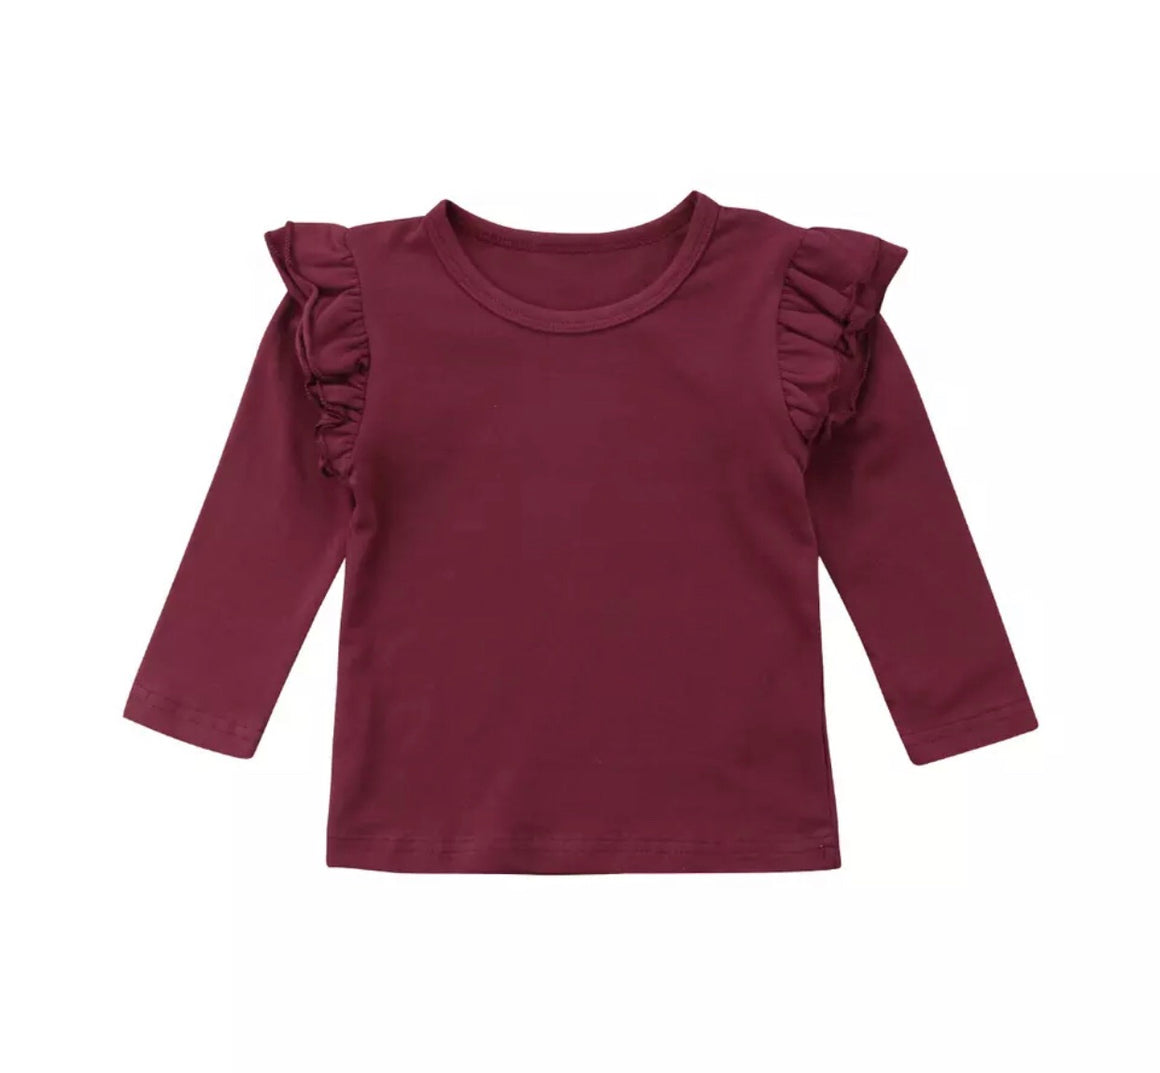 Flutter Top Long Sleeved -Red Wine